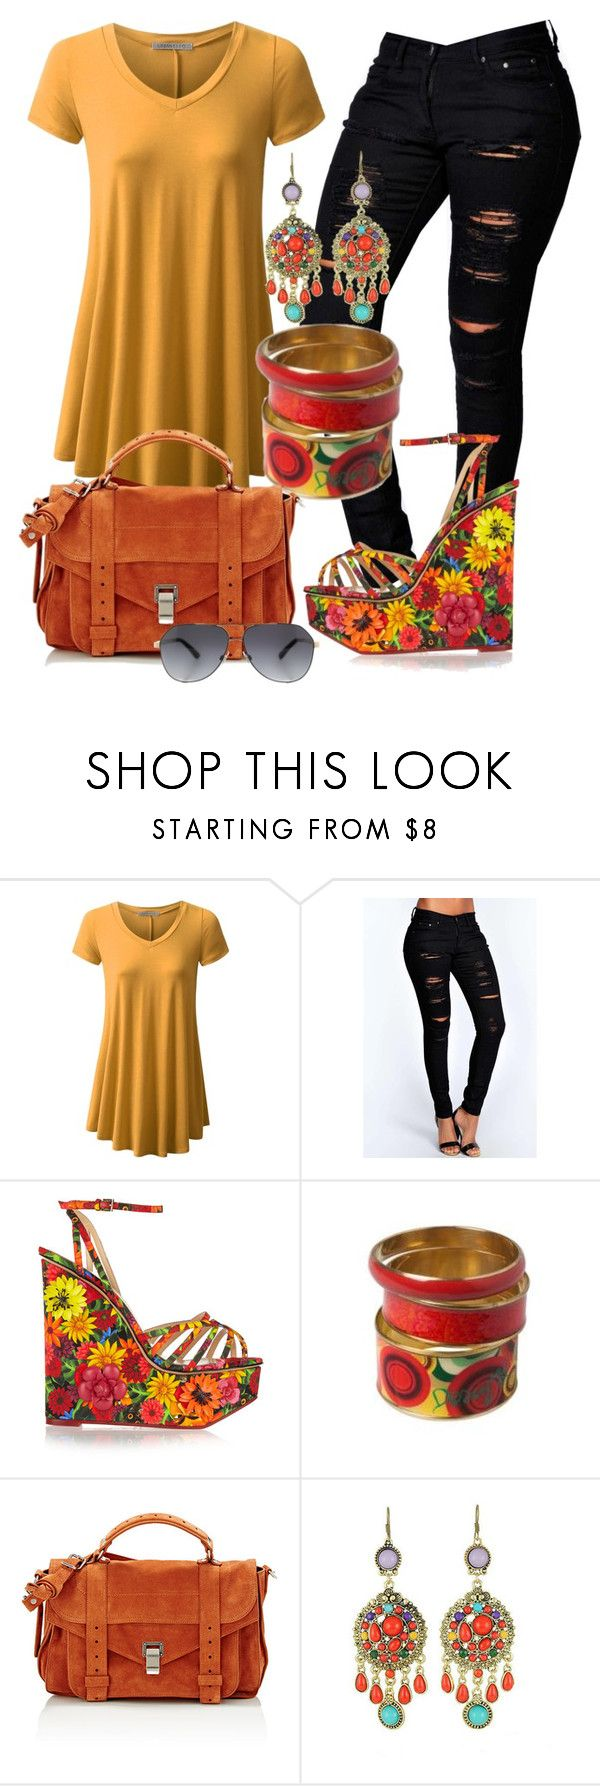 """""""Boémio"""" by alice-fortuna on Polyvore featuring Boohoo, Charlotte Olympia, Desigual, Proenza Schouler, WithChic and Dolce&Gabbana"""